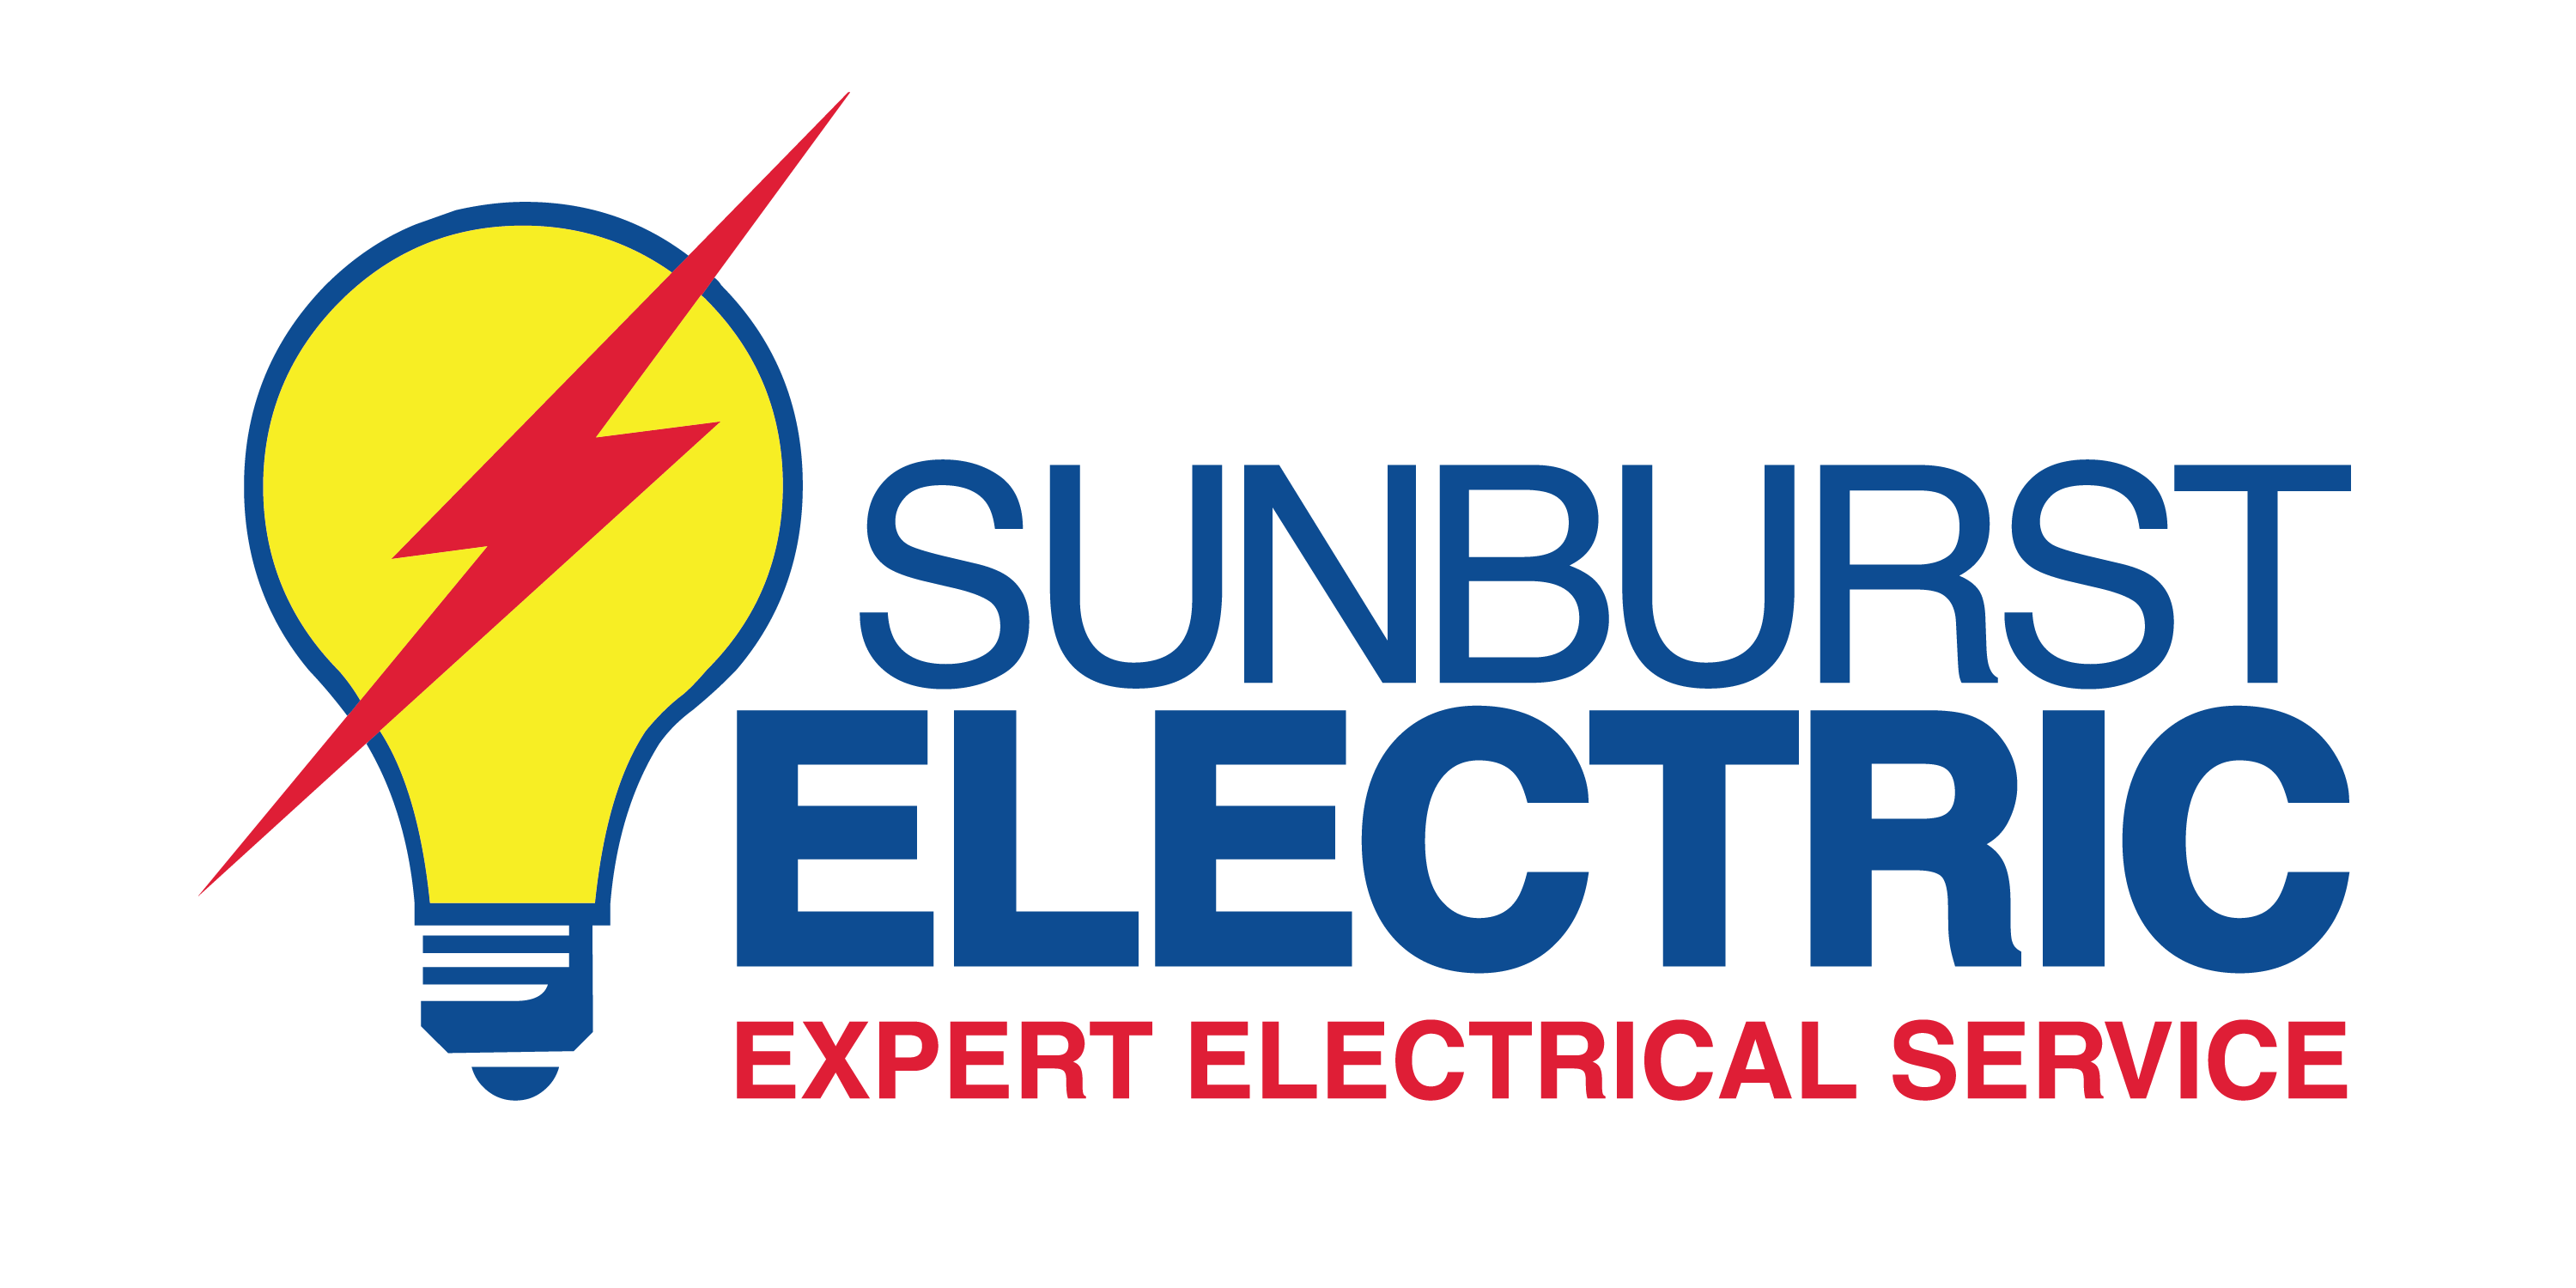 Sunburst Electric Electricians, Repair and Service, Electronics and ...